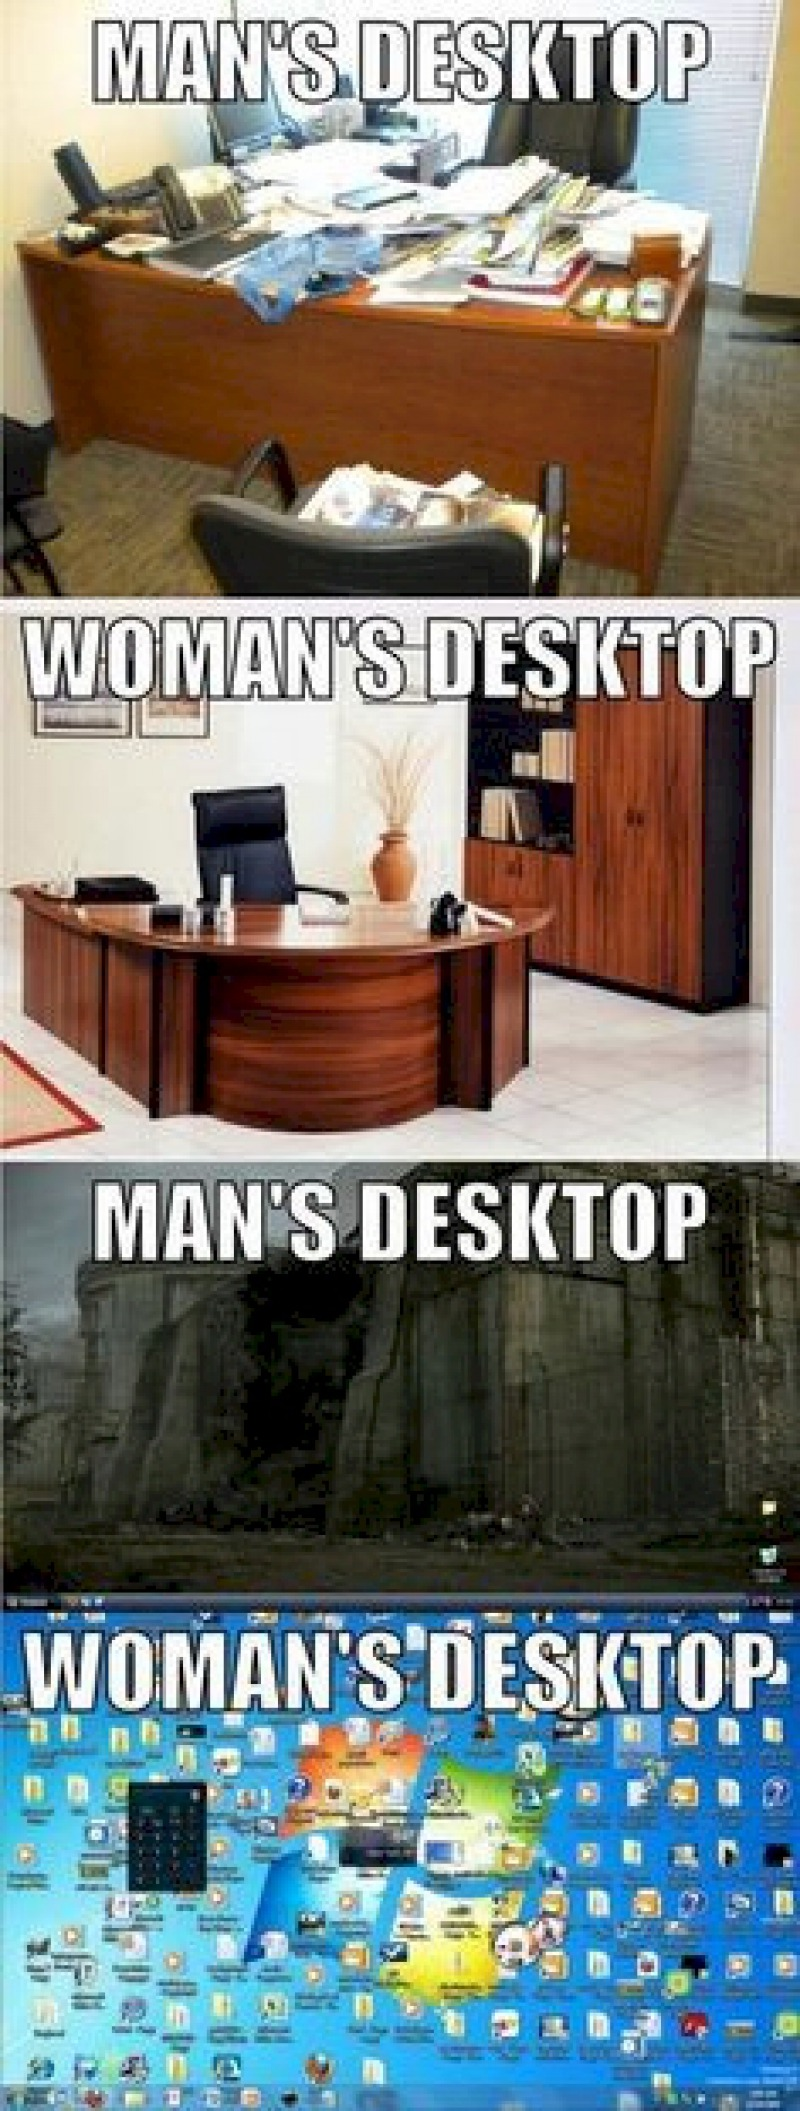 The Striking Difference-15 Hilarious Differences Between Men And Women